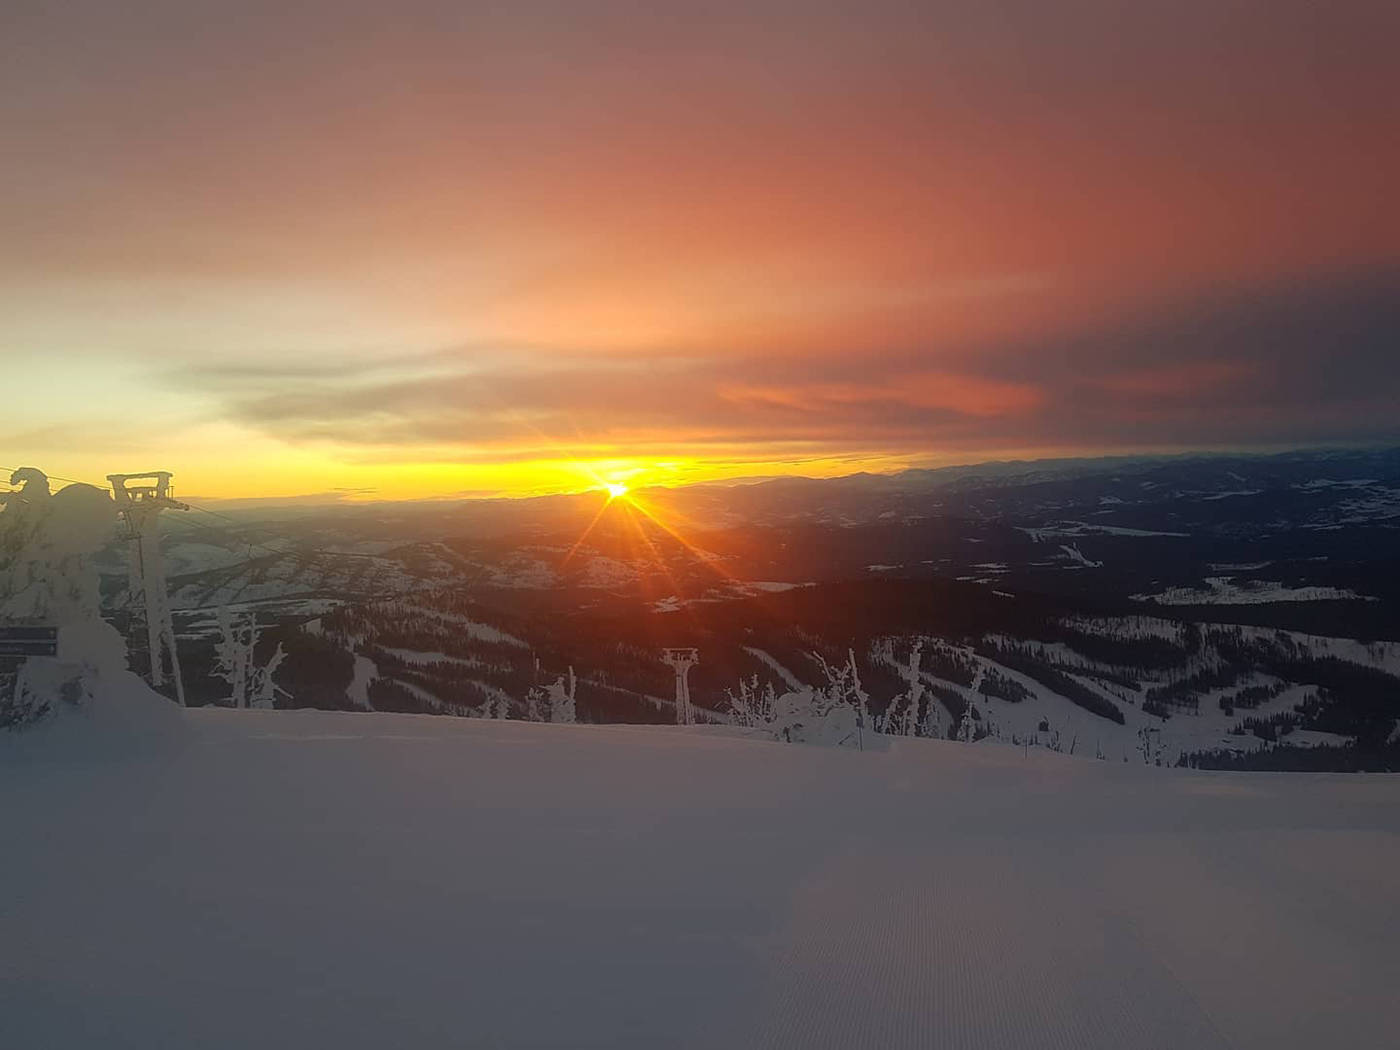 Baldy Mountain Resort was shut down on Saturday after a fatal workplace accident. (Baldy Mountain picture)